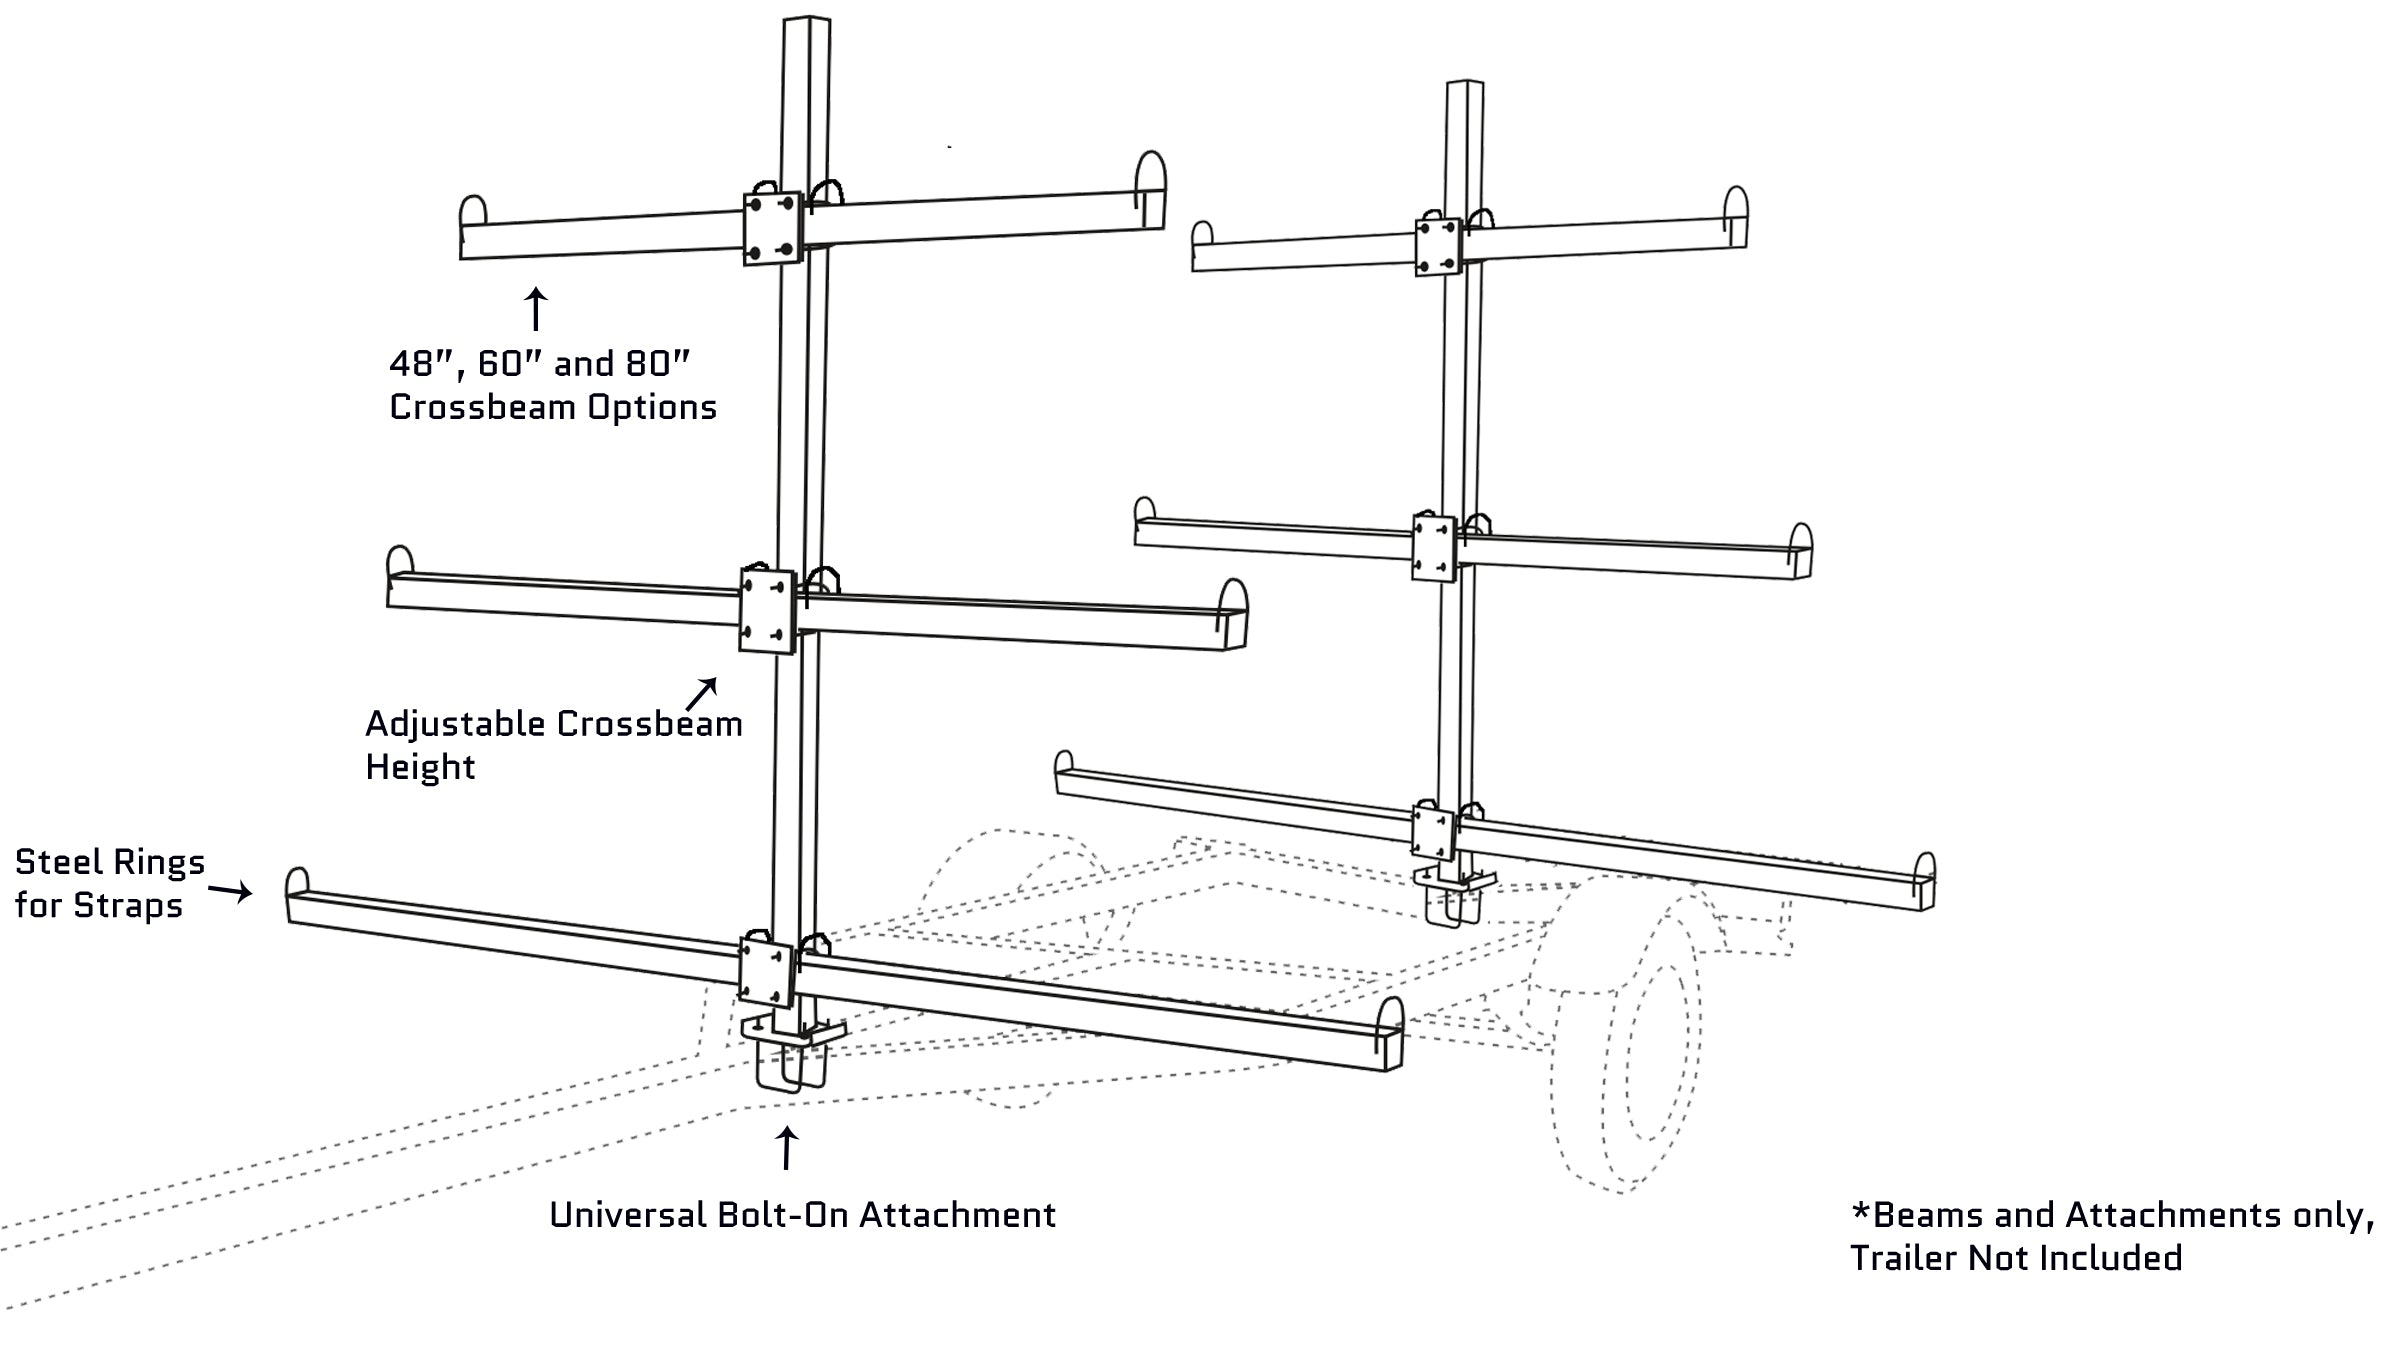 canoe kayak trailer crossbeam options